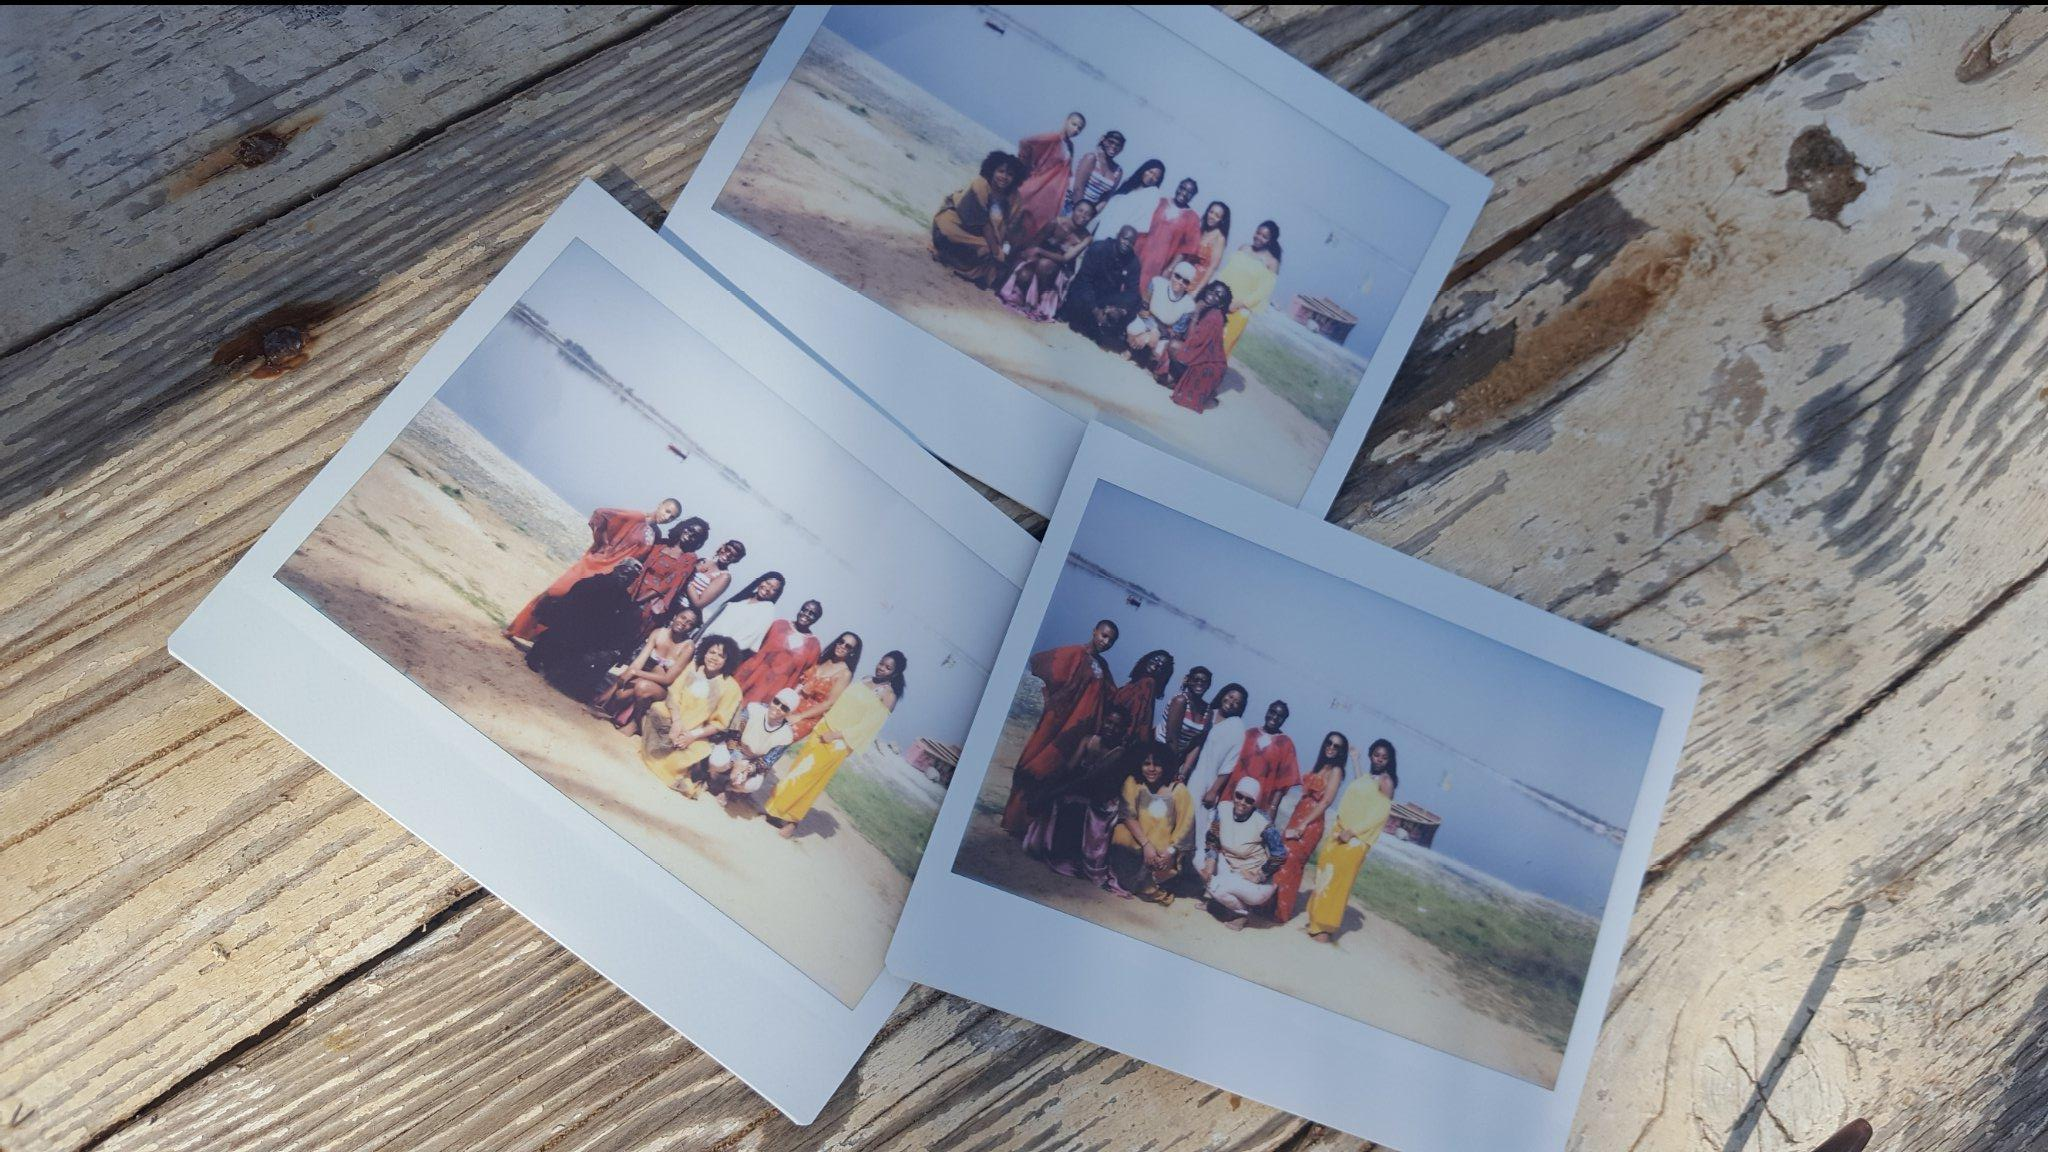 we-sisterhood-dakar-28-lac-rose-retba-polaroid